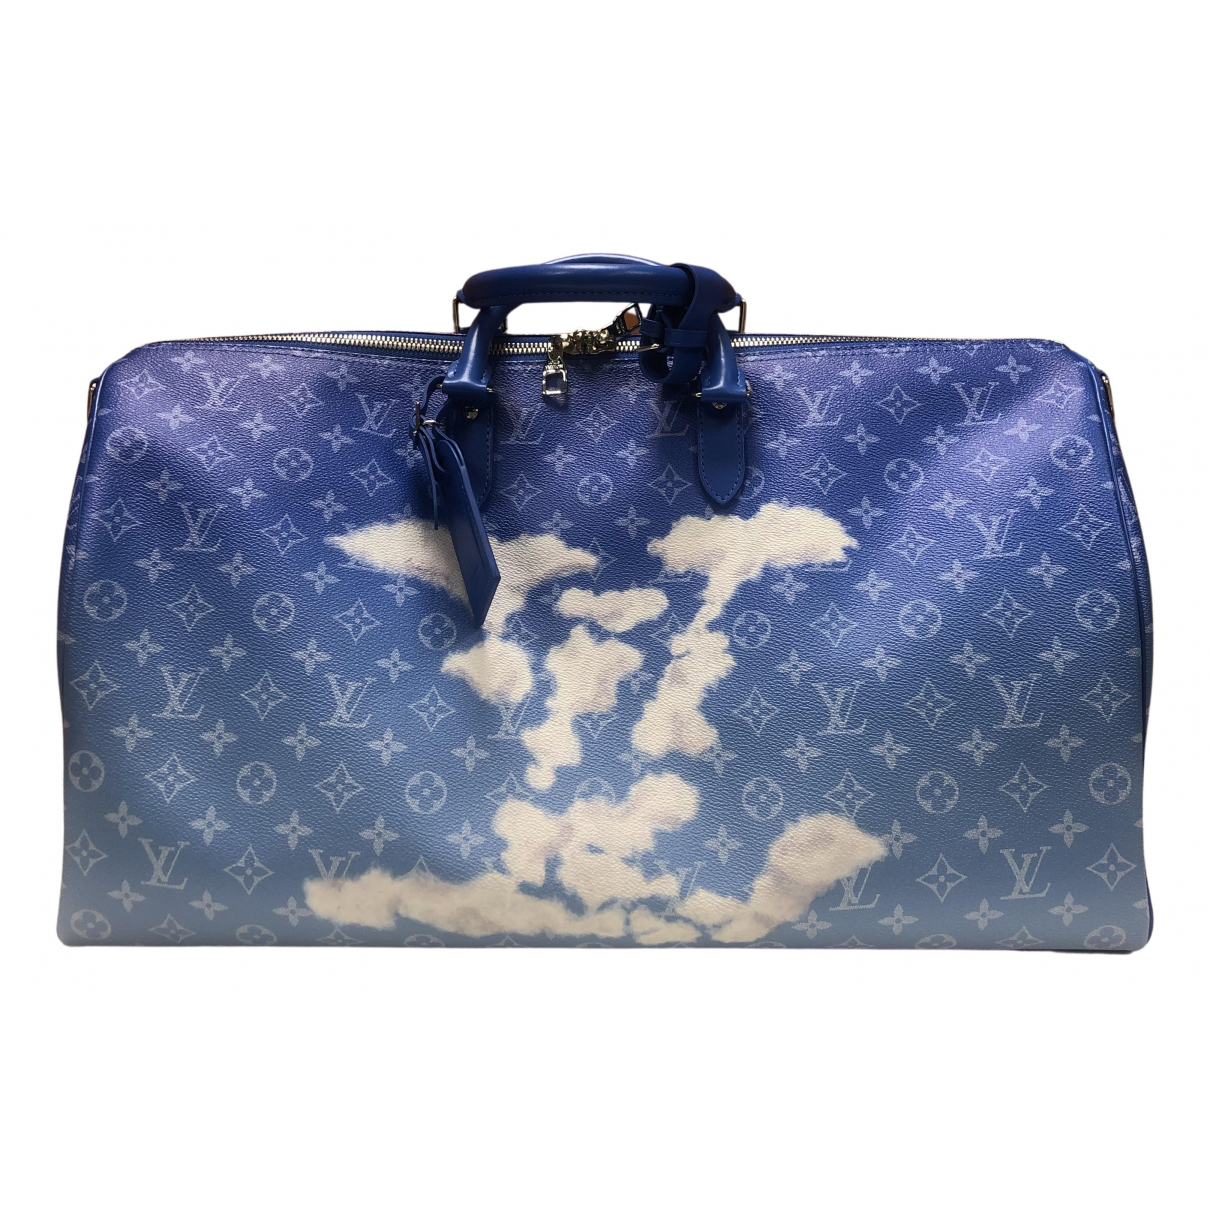 Cartera Keepall de Lona Louis Vuitton